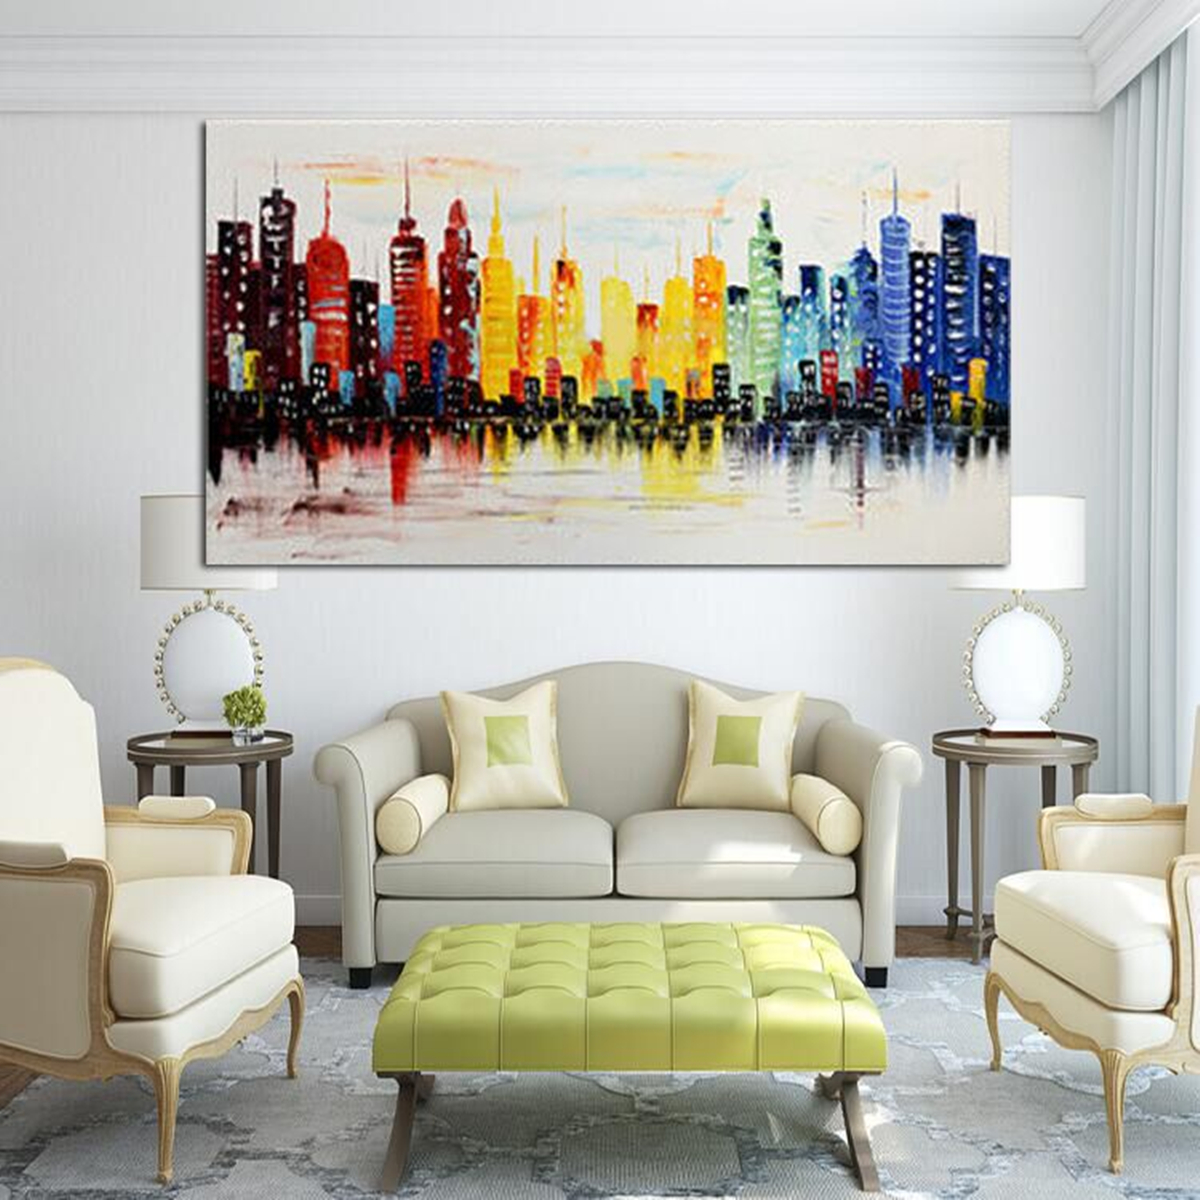 120x60cm modern city canvas abstract painting print living room art wall decor no frame